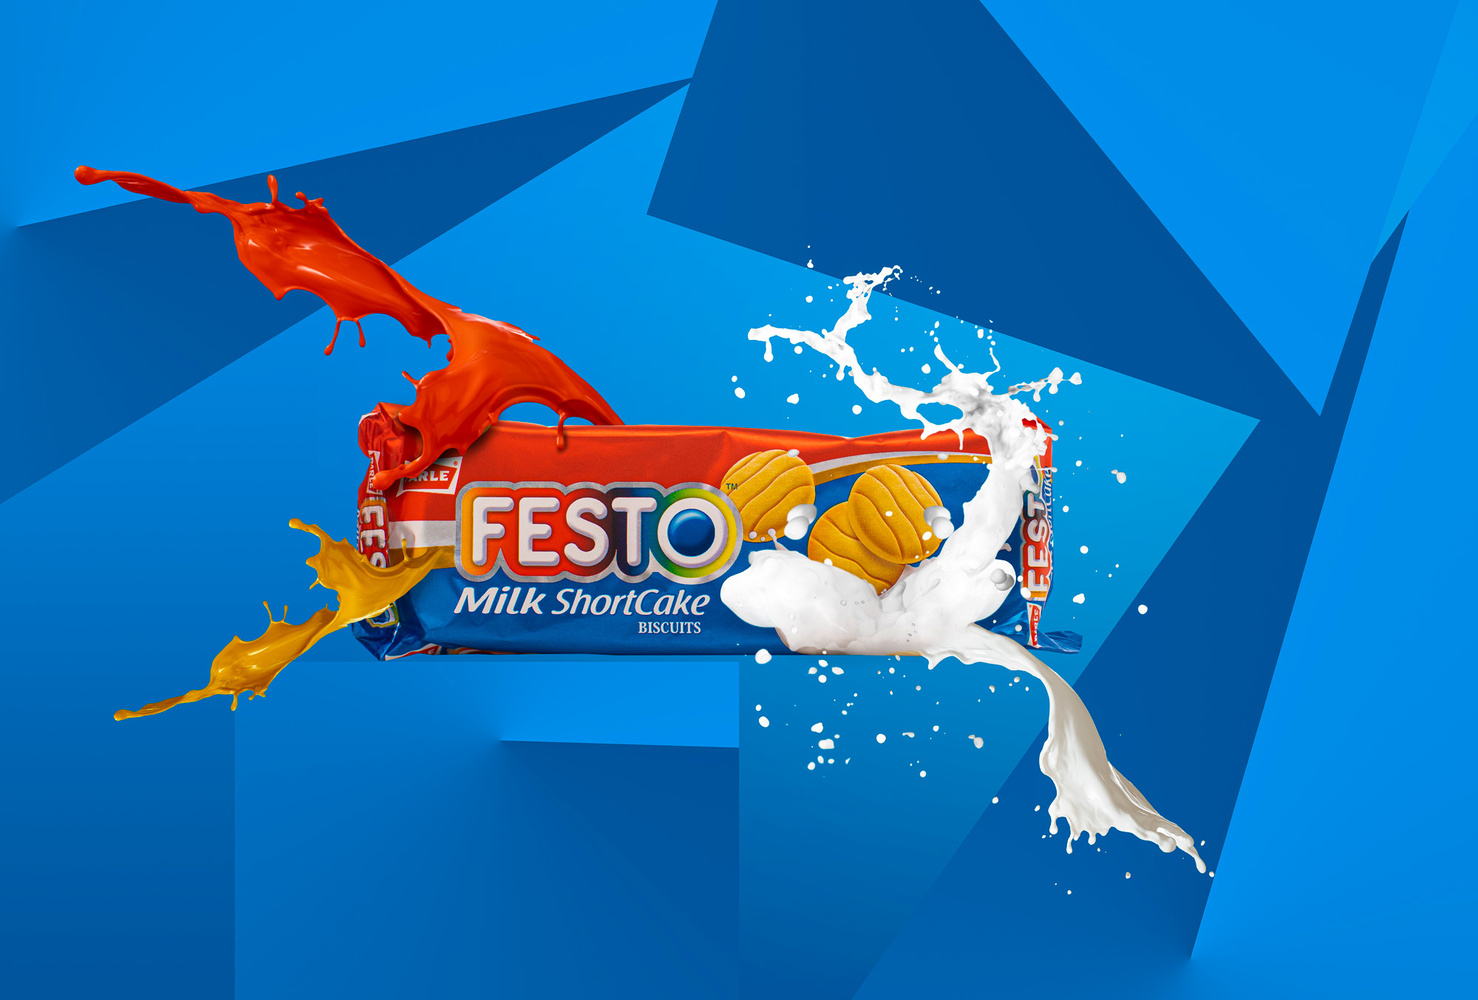 FESTO by ALLOYS ITEBA